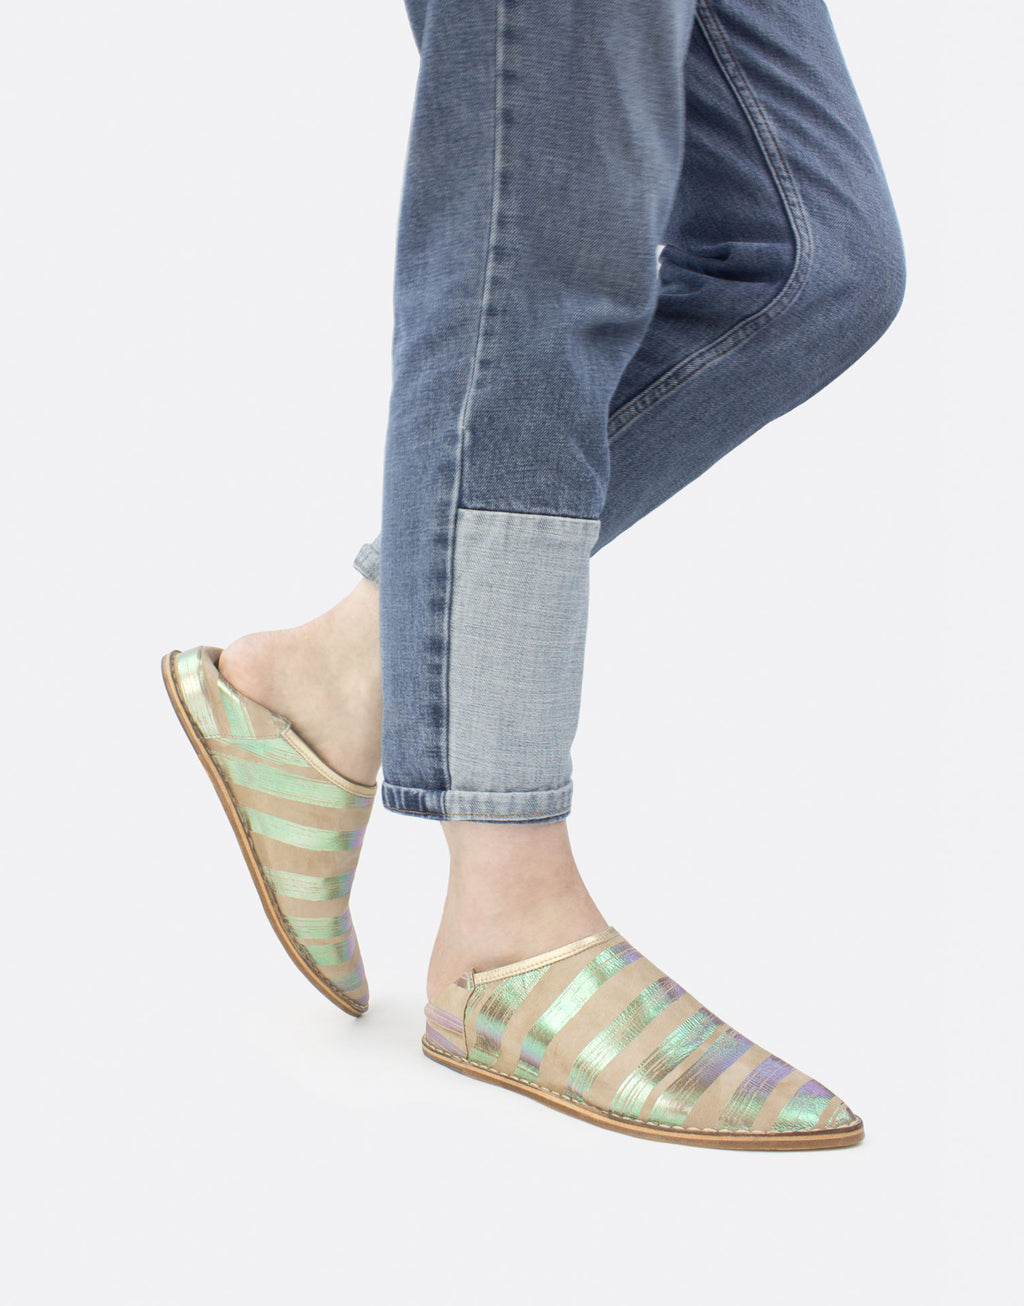 Neutral suede slip on slipper shoe with iridescent pink green metallic brushstroke stripes by designer Georgina Goodman